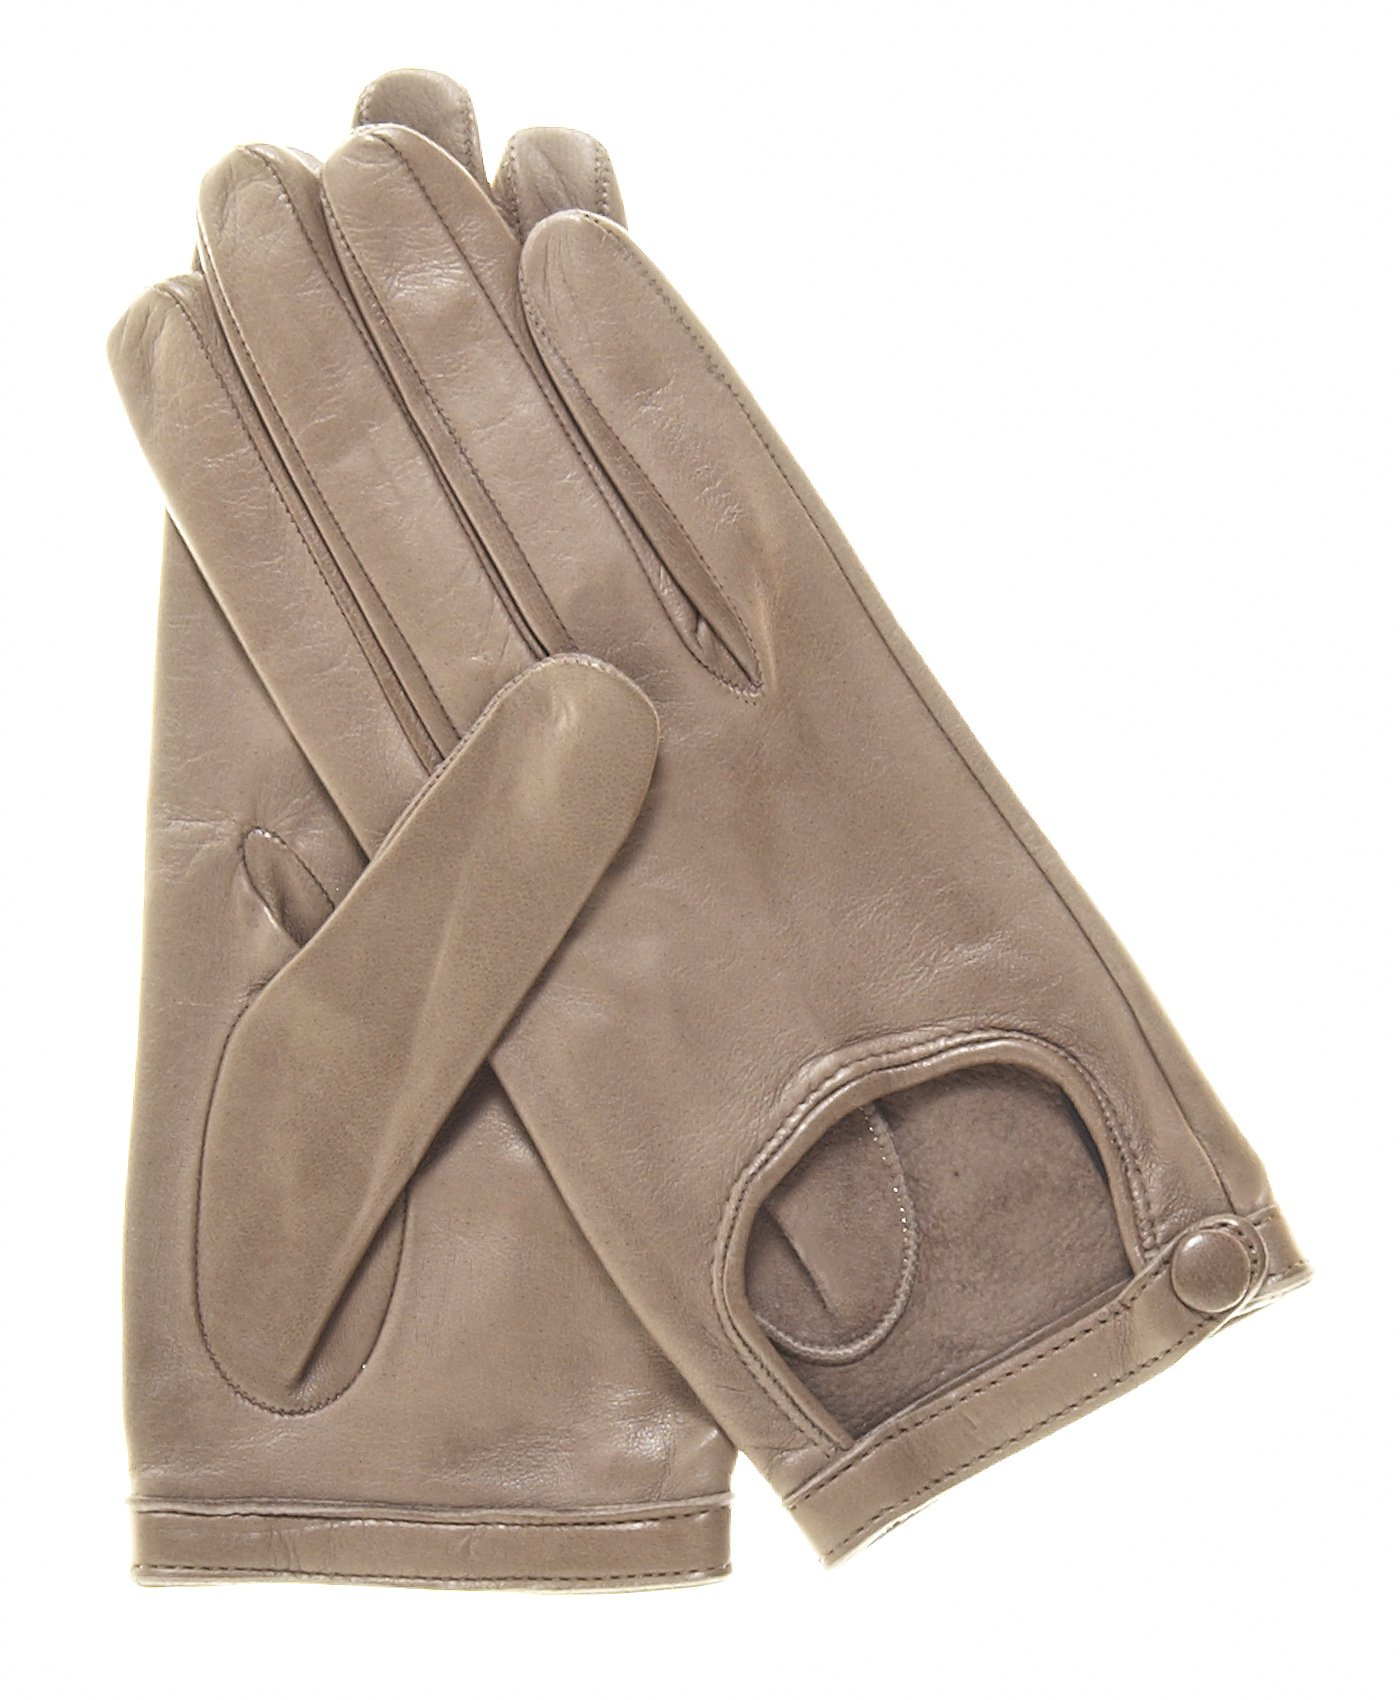 Fratelli Orsini Women's Classico Italian Lambskin Driving Gloves Size 7 1/2 Color Taupe by Fratelli Orsini